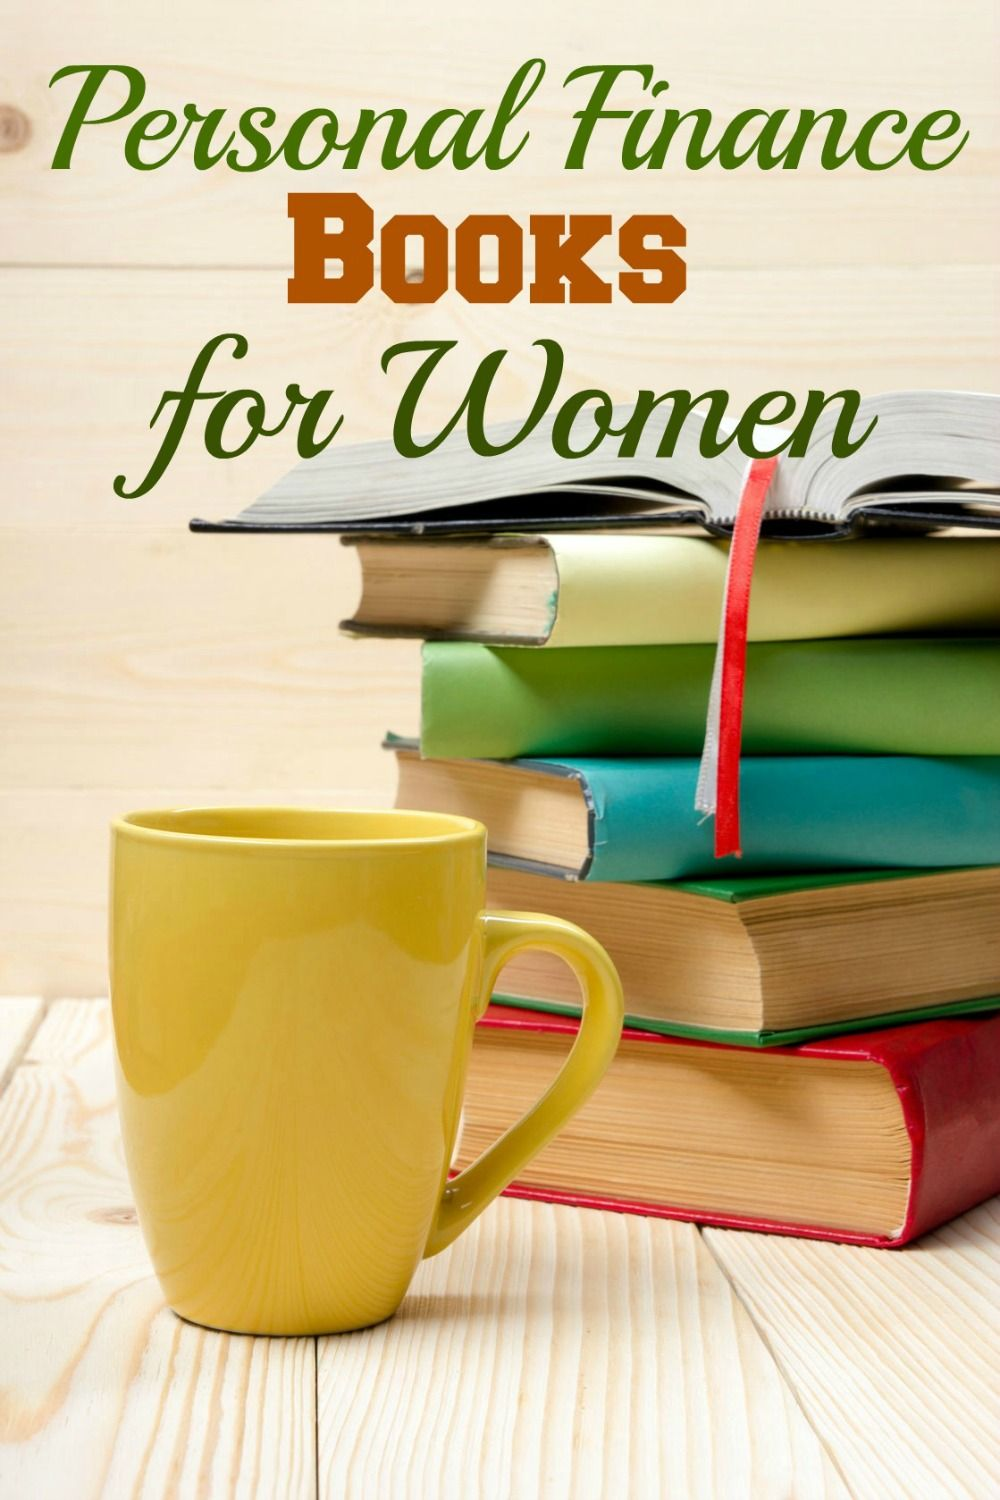 10 Personal Finance Books For Women Esavingsblogs Bes